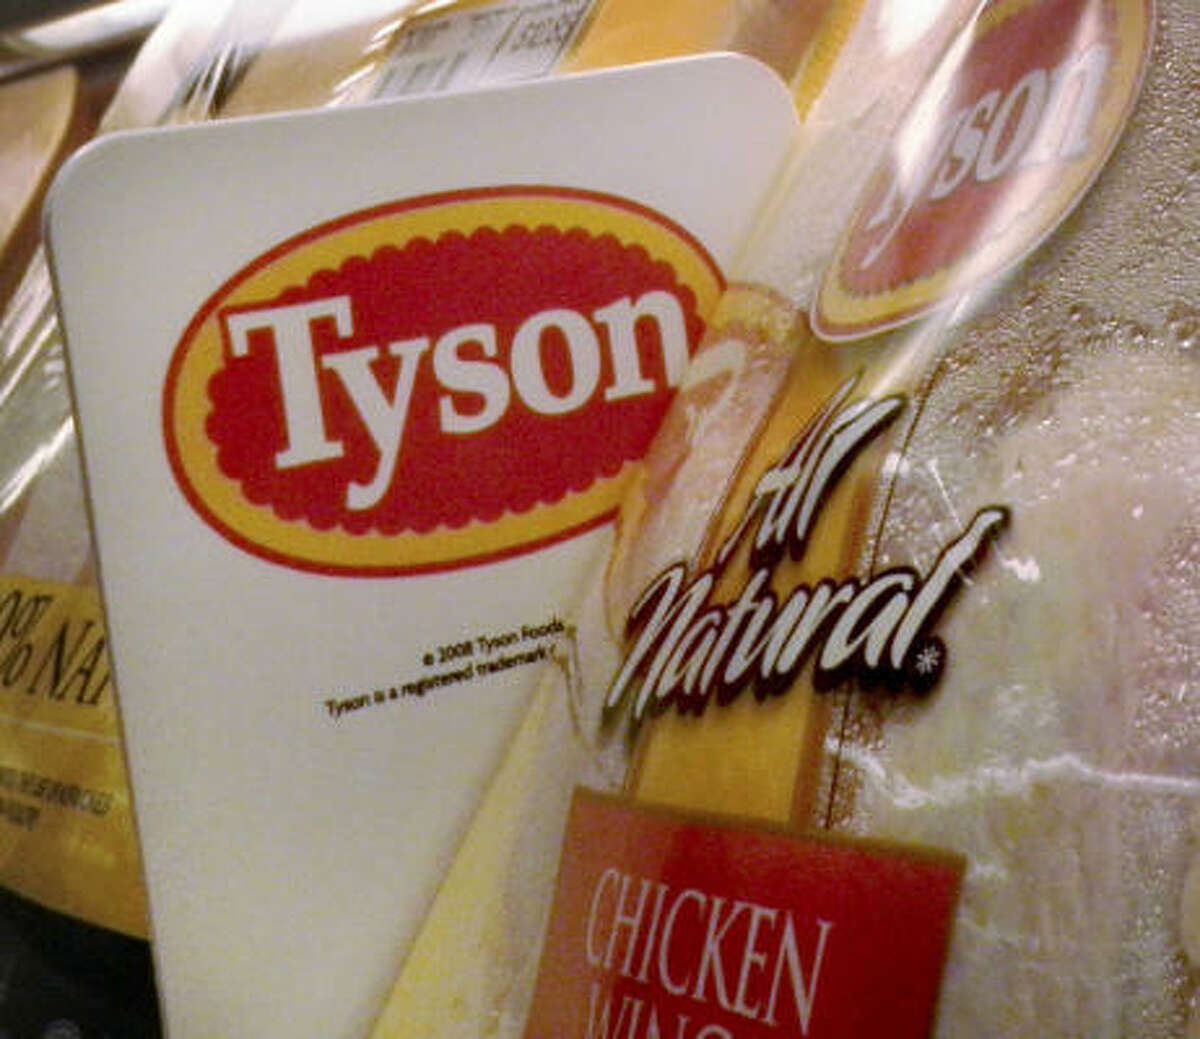 Tyson Foods Many customers may not realize it, but Tyson Foods is a very religious company that embraces spirtuality in the workplace. Founder John Tyson speaks openly about his Christian beliefs, and the company's core values say that it